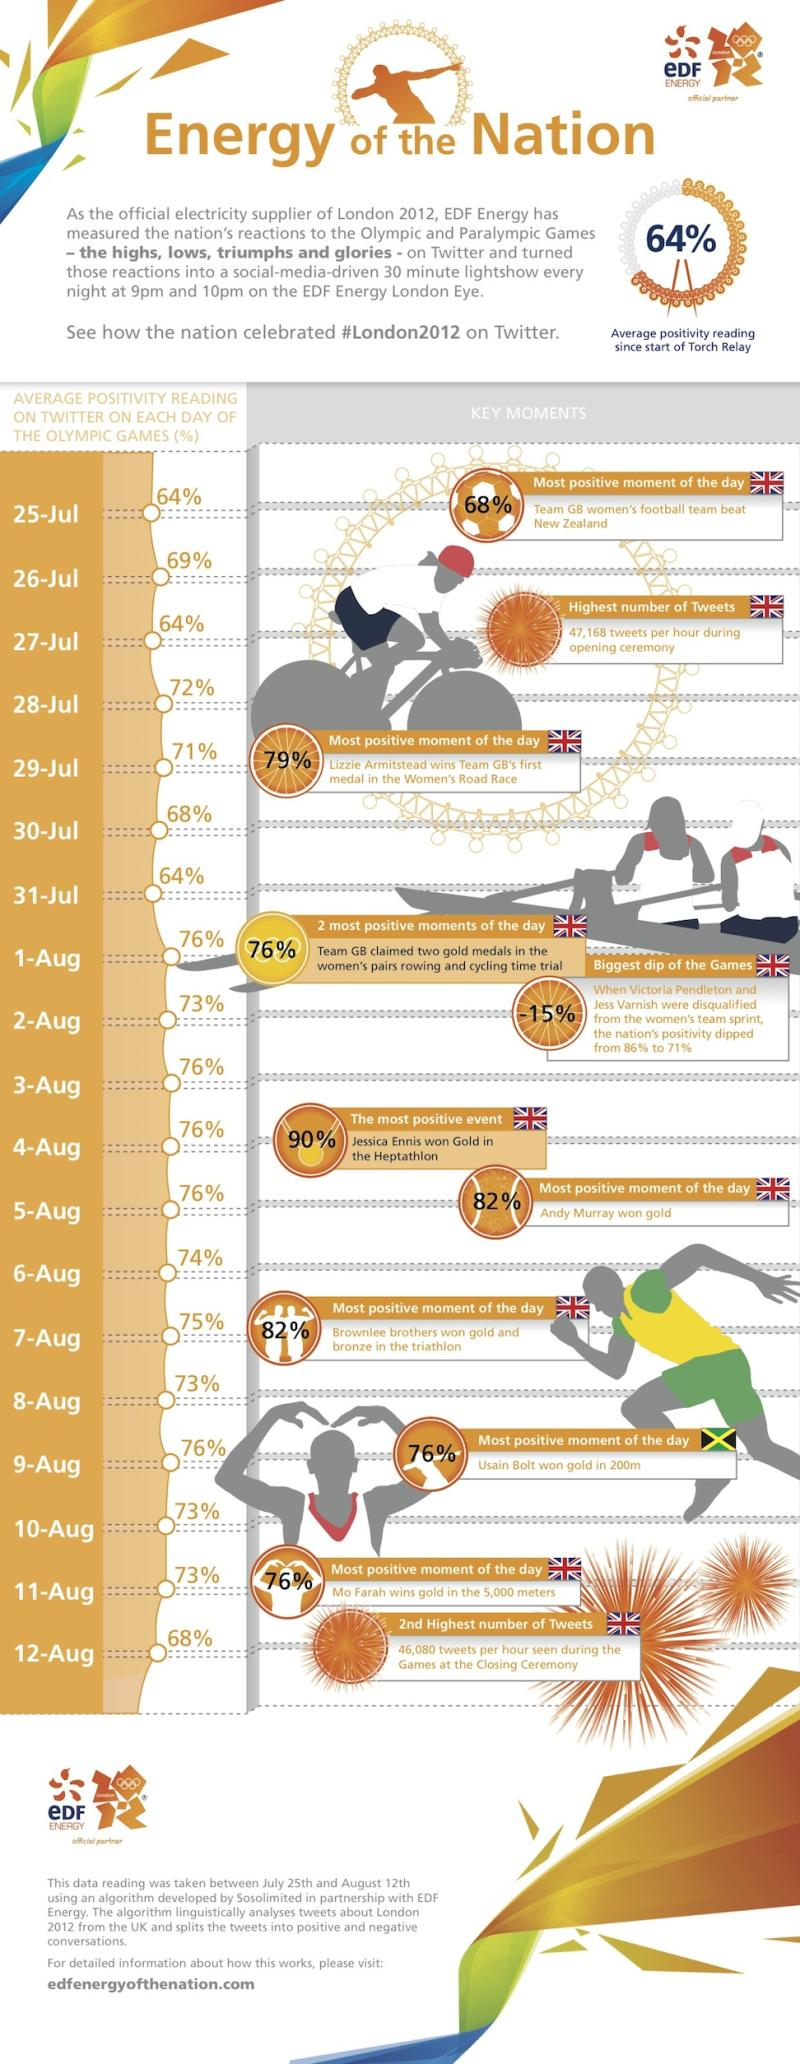 U.K. Twitter Users' Favorite Olympic Moments [INFOGRAPHIC]